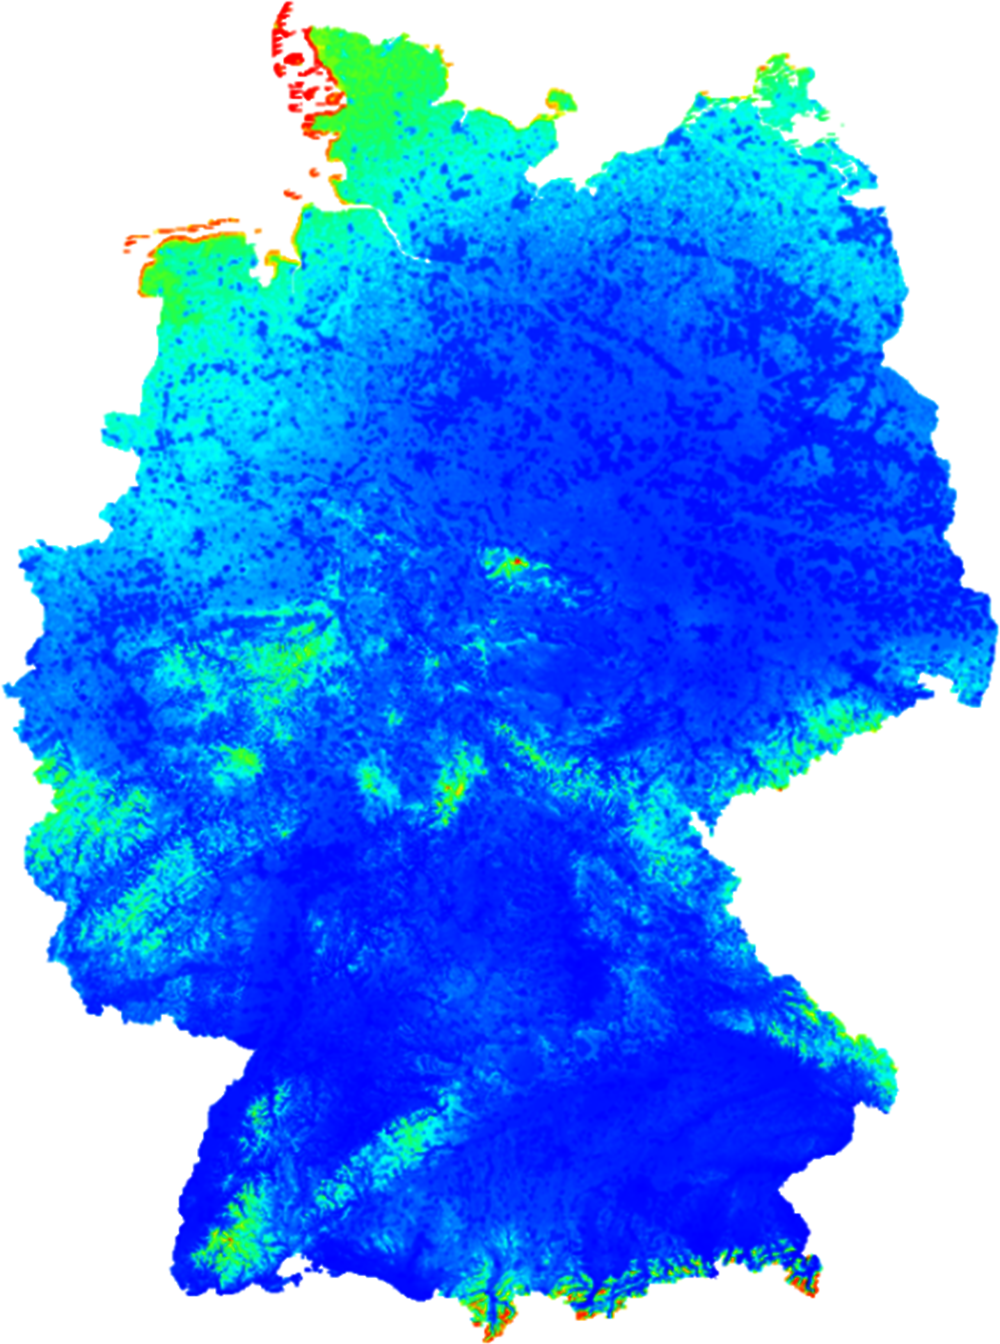 Figure 1.17. Local wind power adequacy in Germany